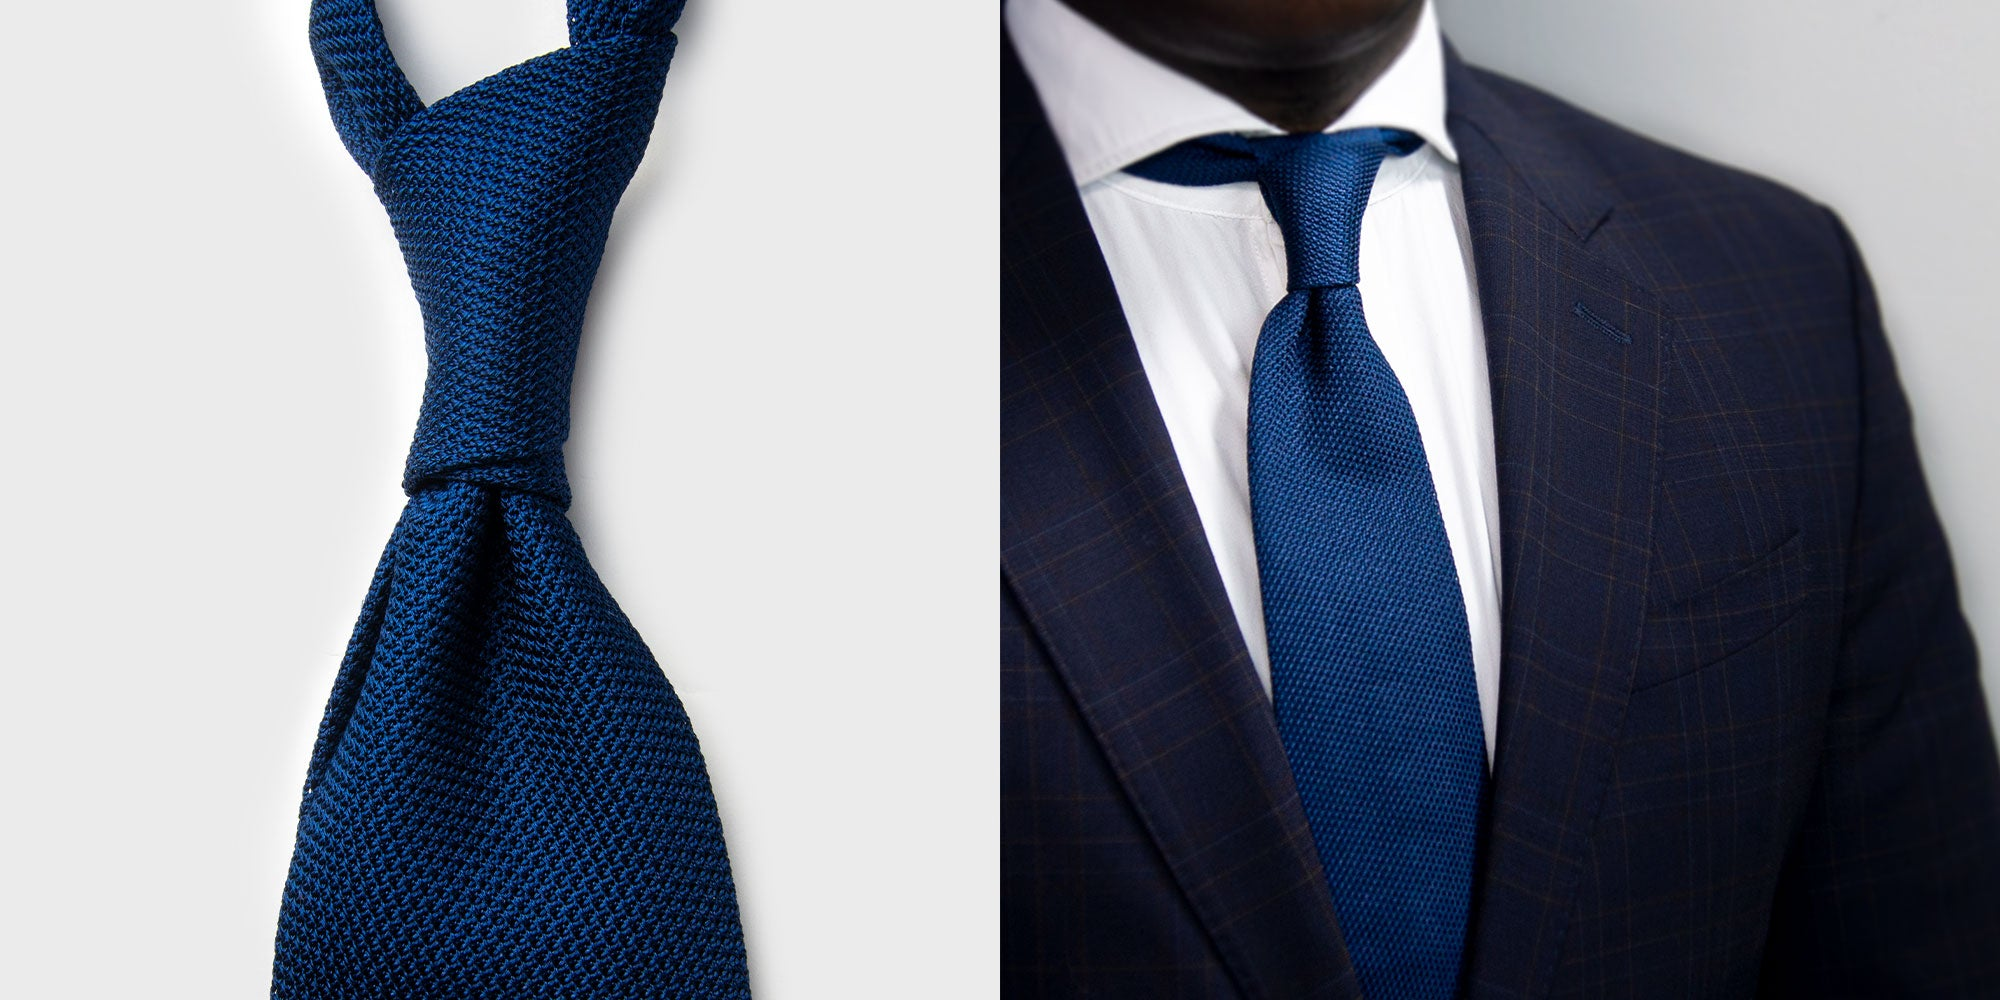 Aklasu French Blue Grenadine Tie with white shirt and patterned dark blue suit